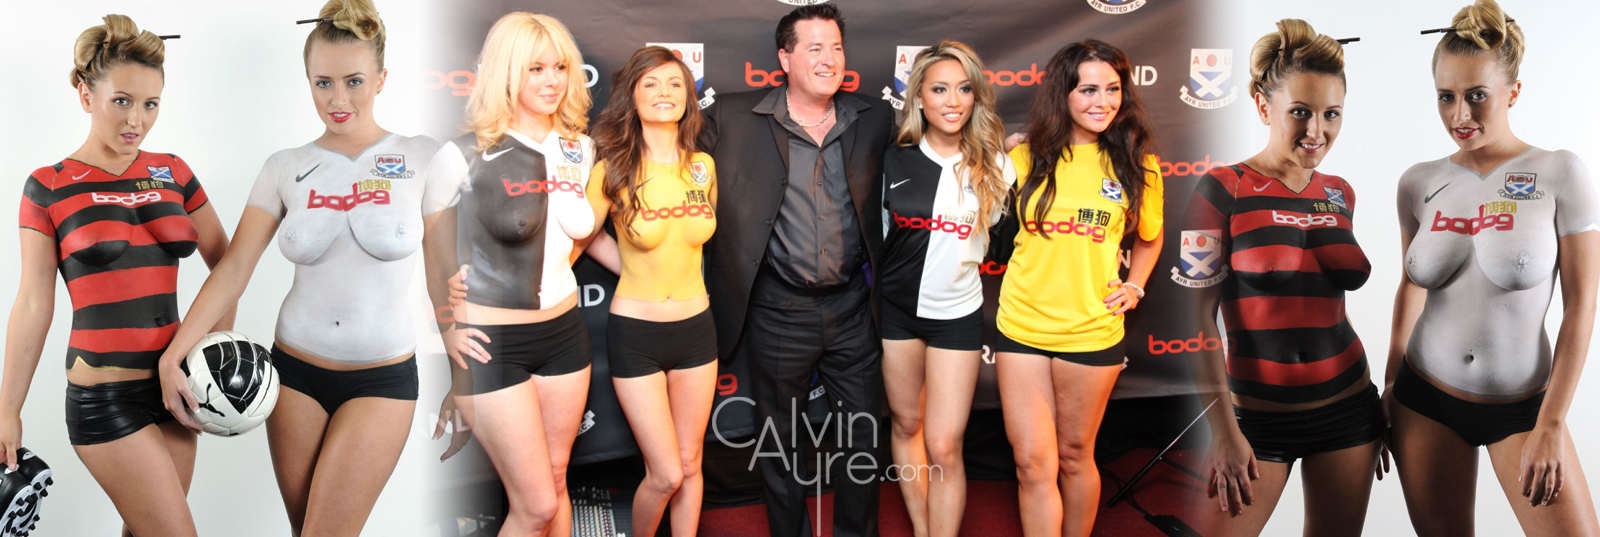 Bodog's revealing of the Ayre United jerseys